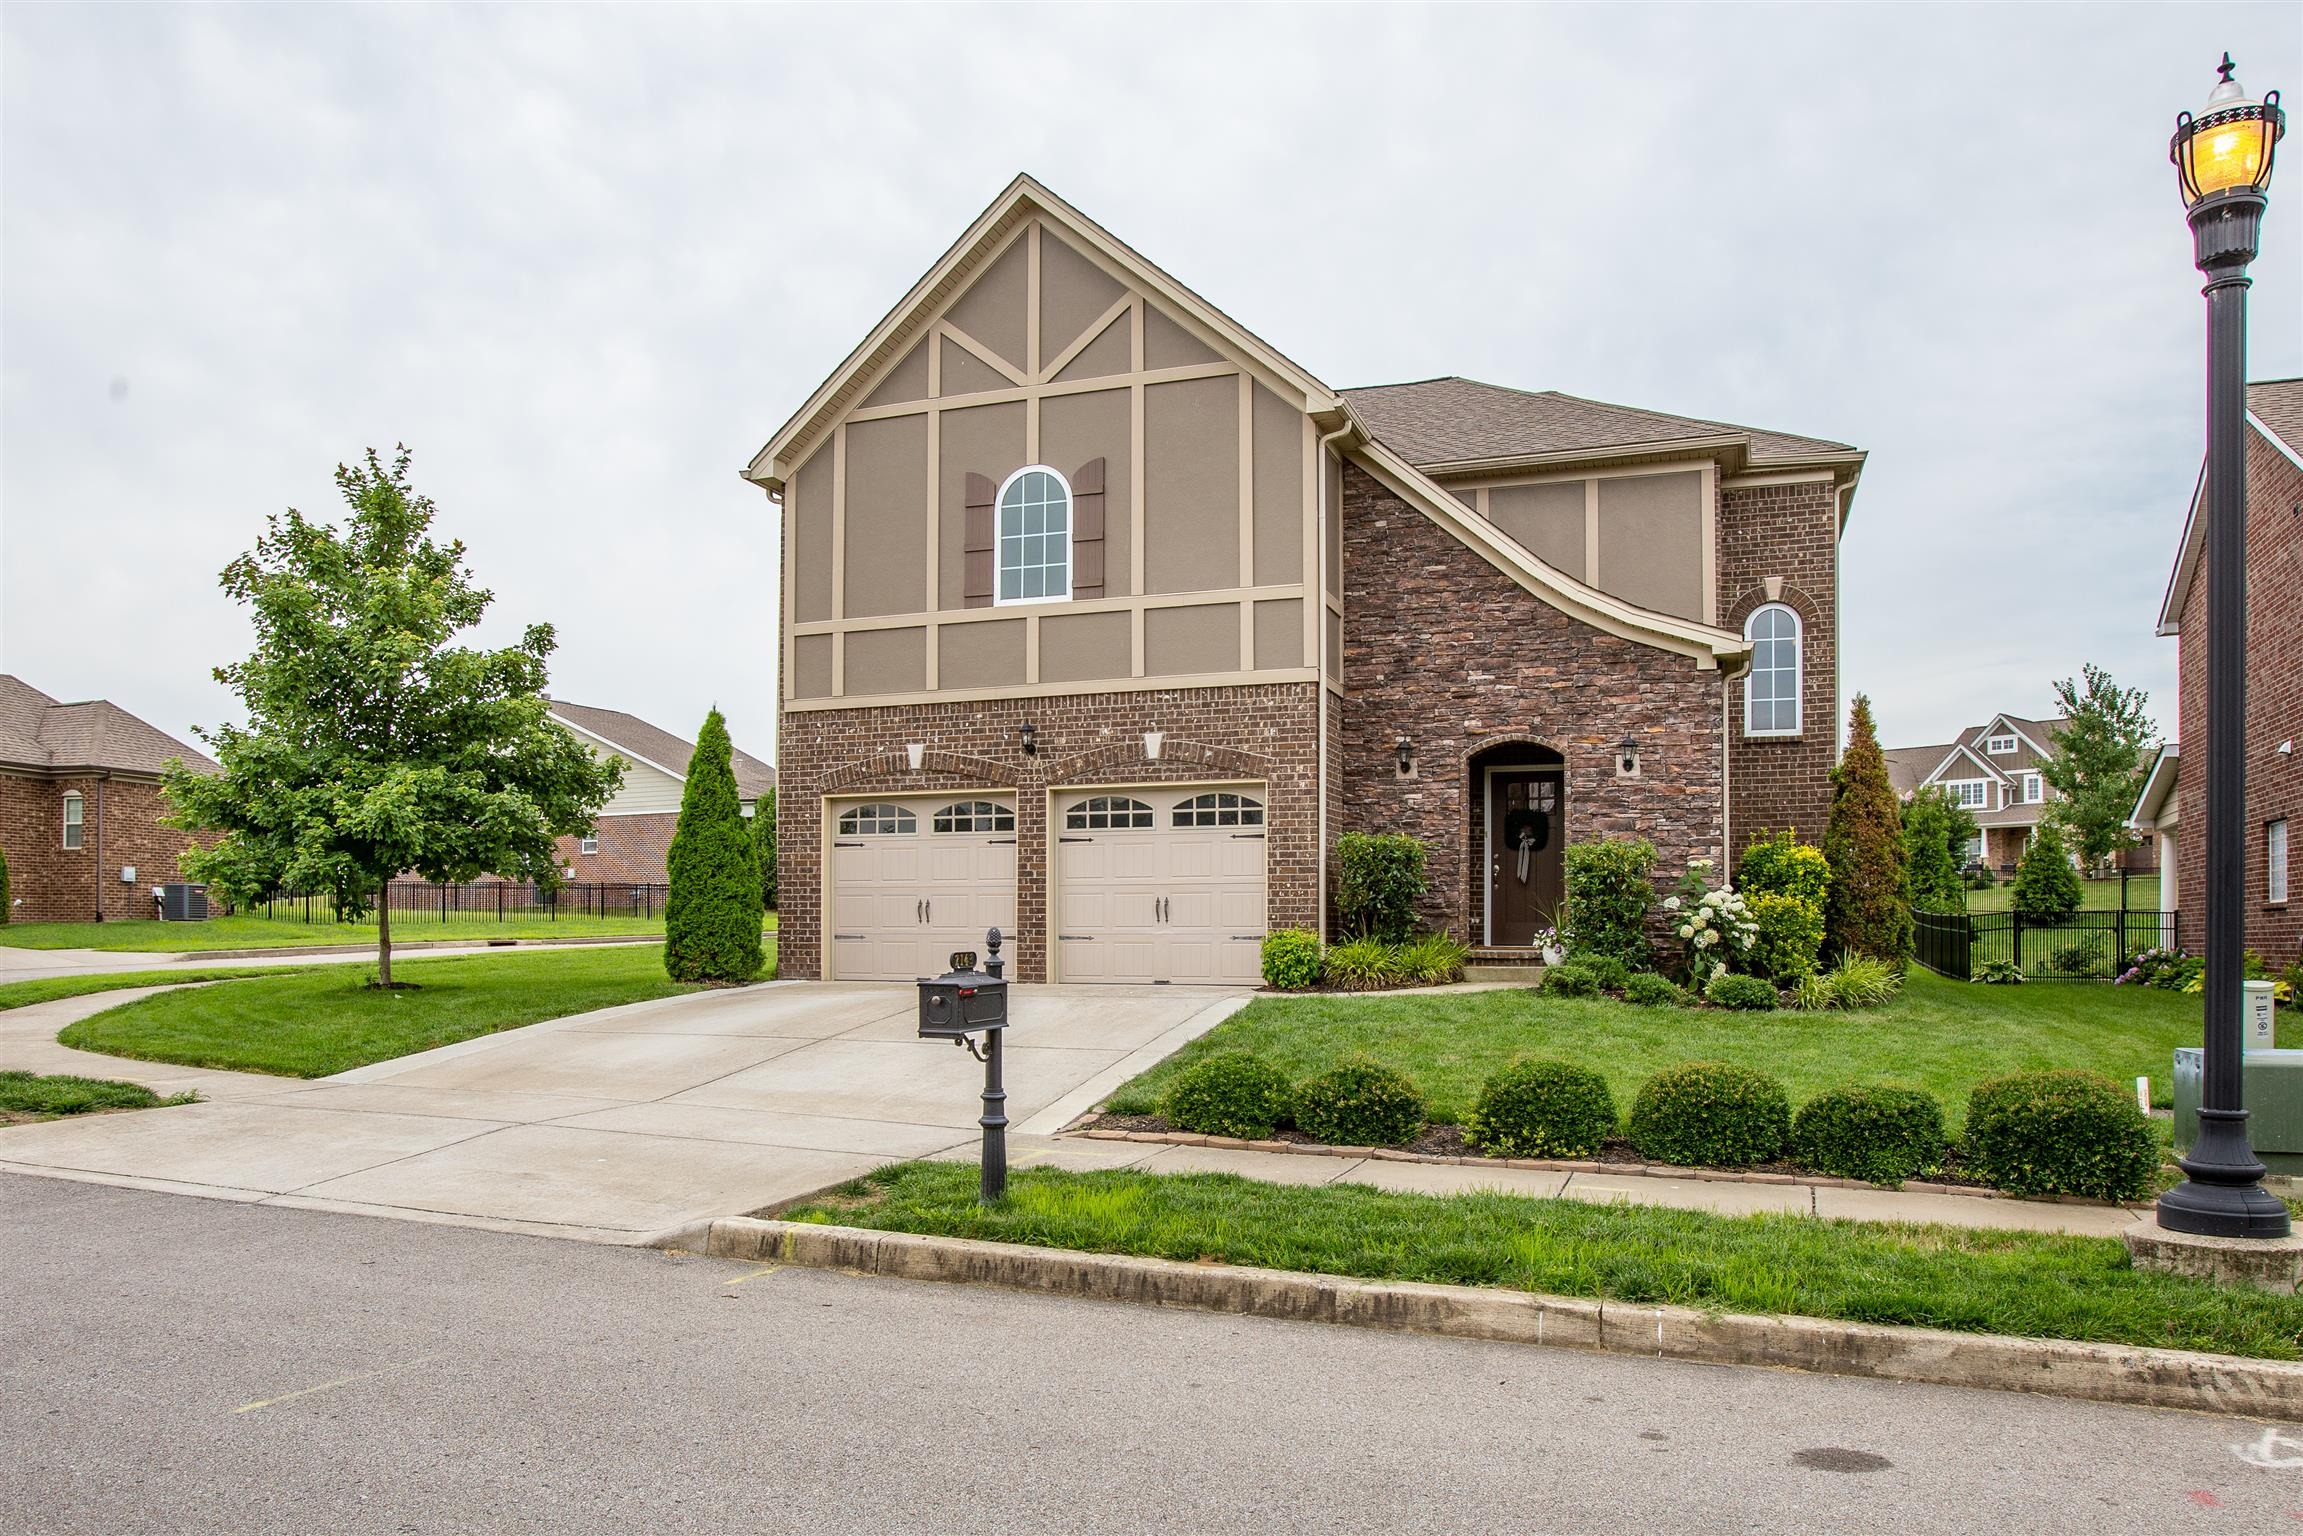 2143 Chaucer Park Ln, Thompsons Station, TN 37179 - Thompsons Station, TN real estate listing